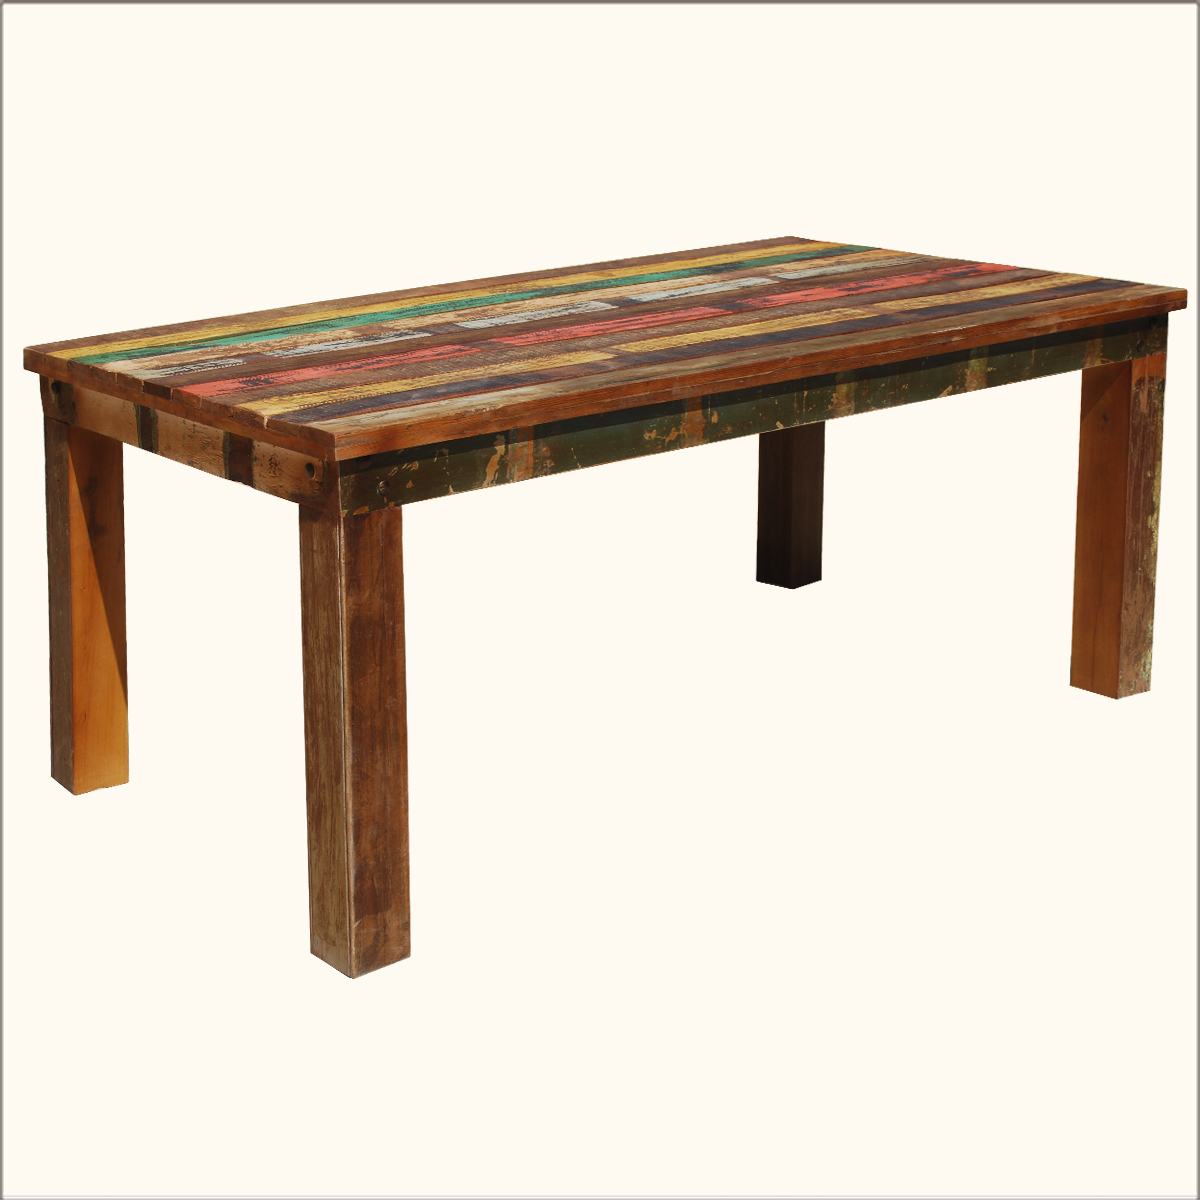 Rustic Solid Teak Reclaimed Wood Distressed Dining Table